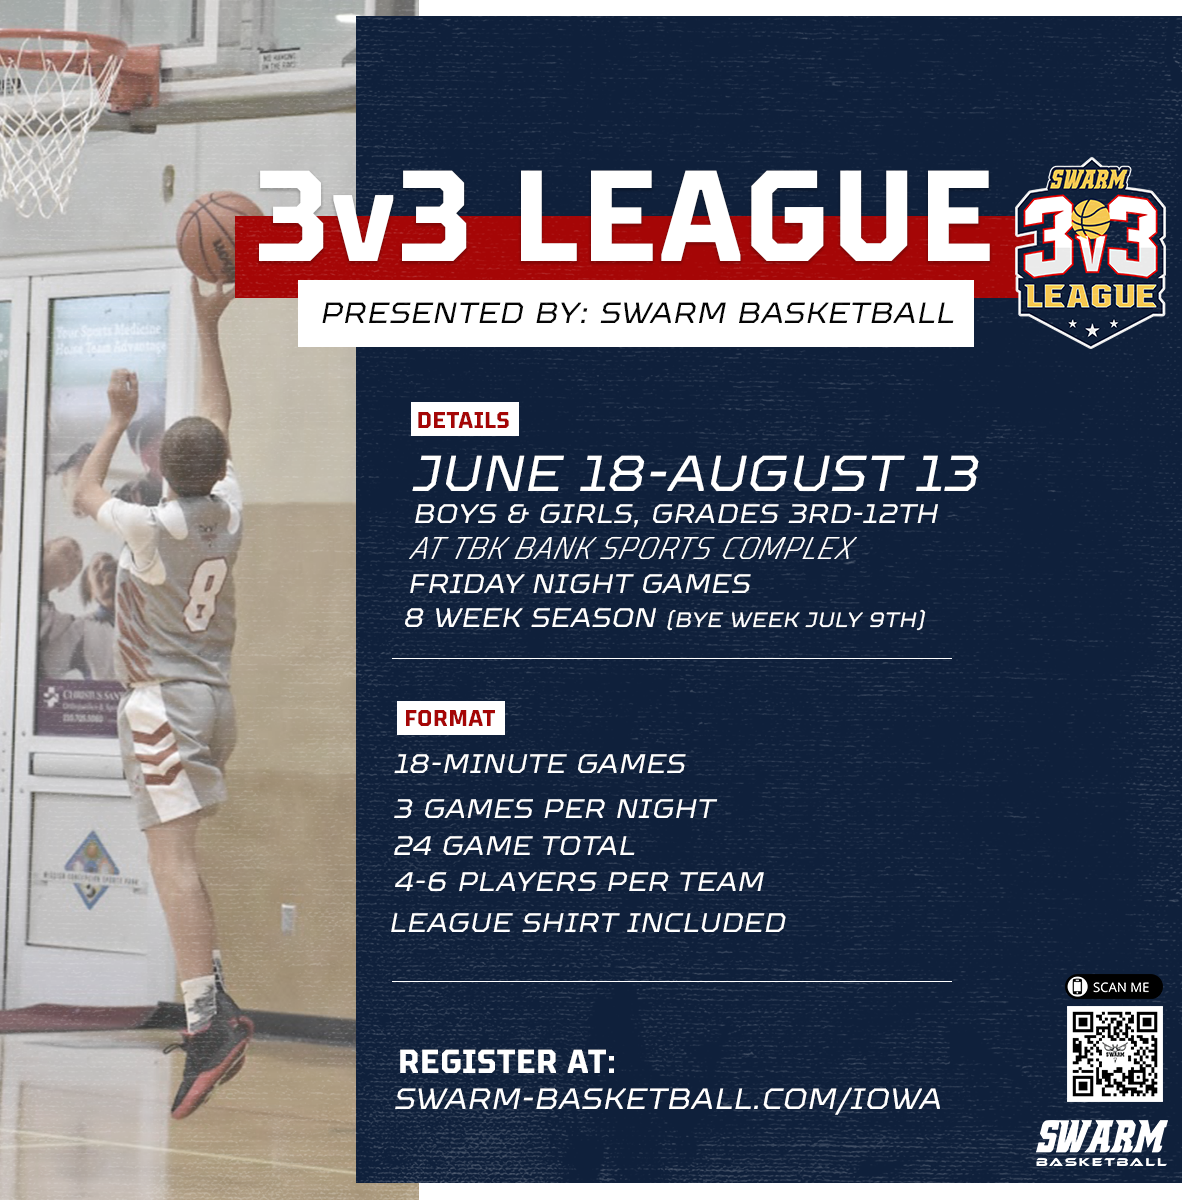 Iowa3v3SummerProgramming_213v3 League copy